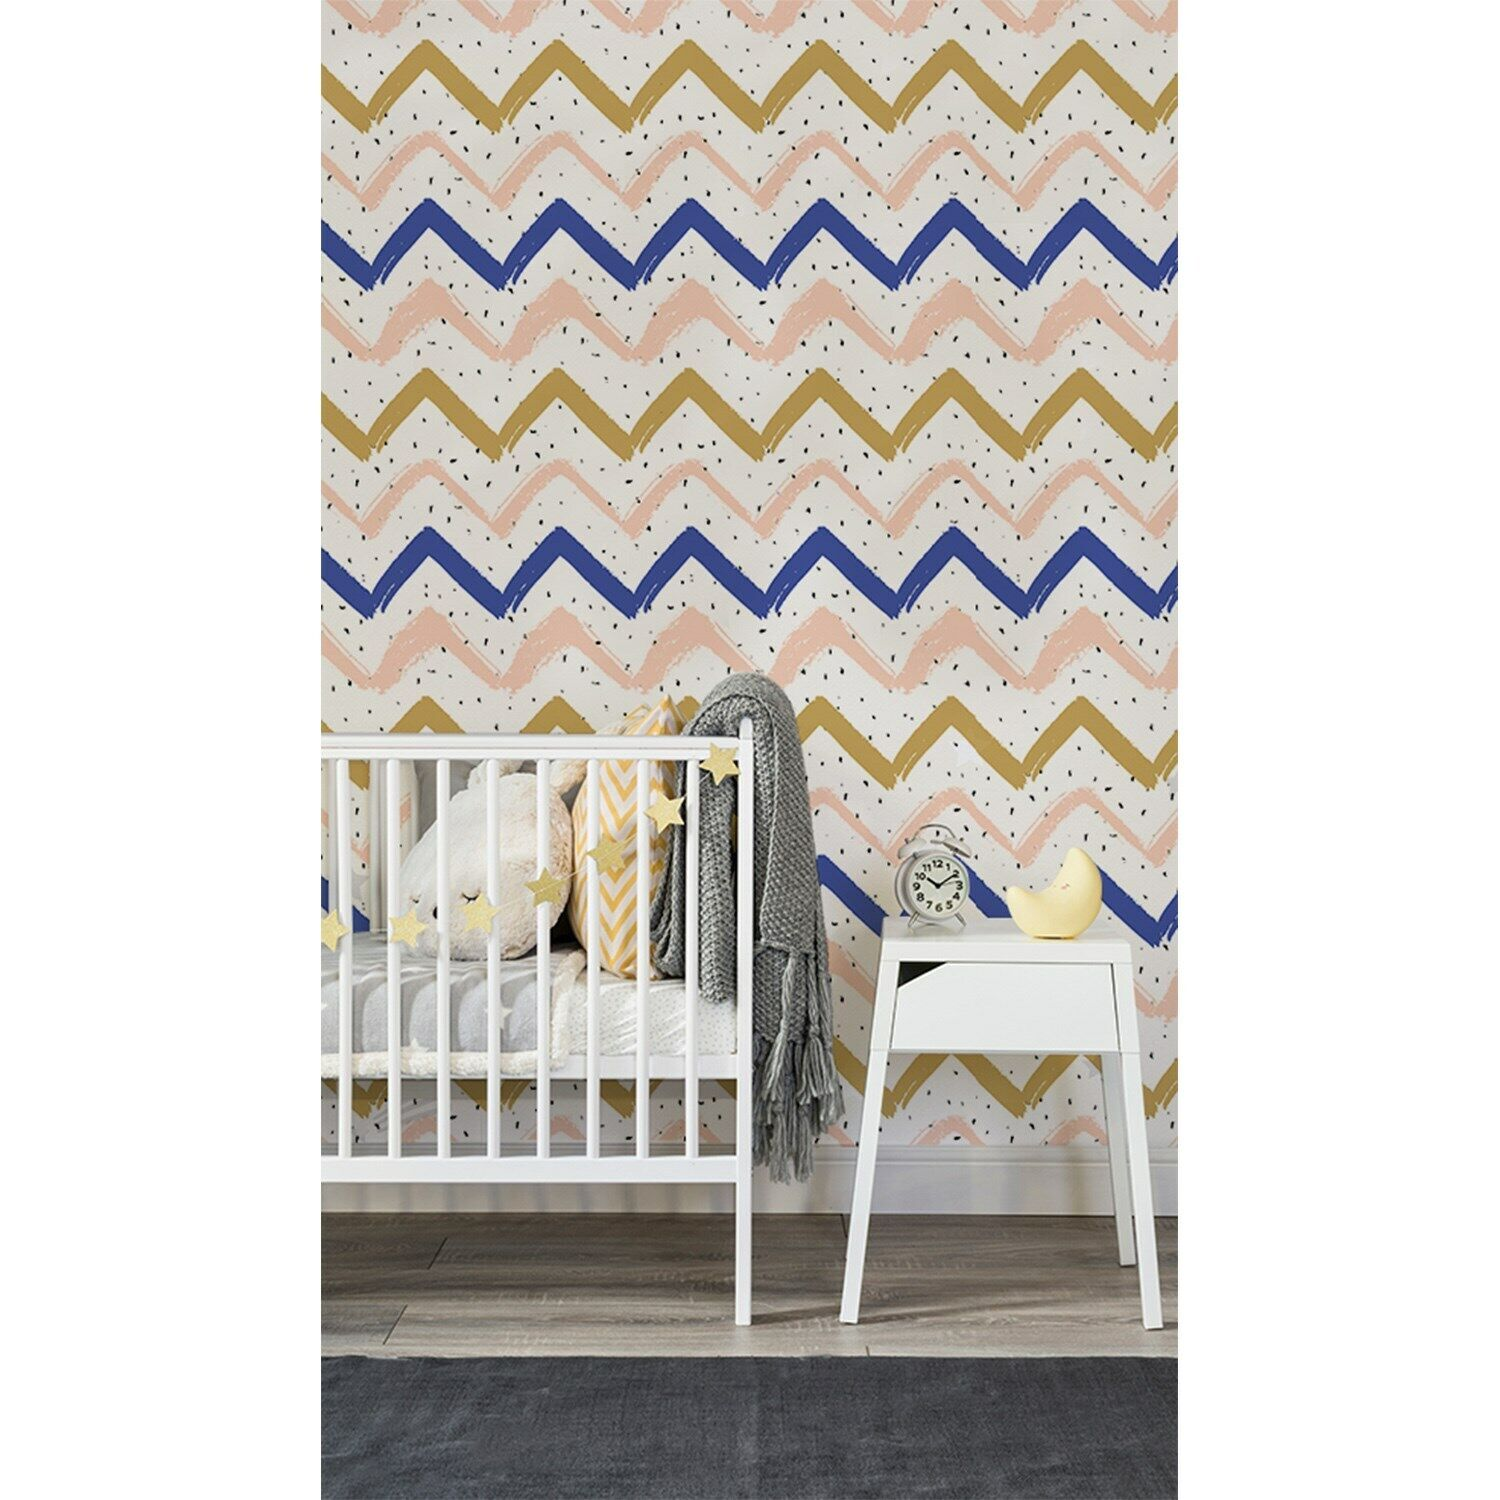 Sweet Zig Zags Traditional Simple wall Home Mural Geometric Non-Woven wallpaper